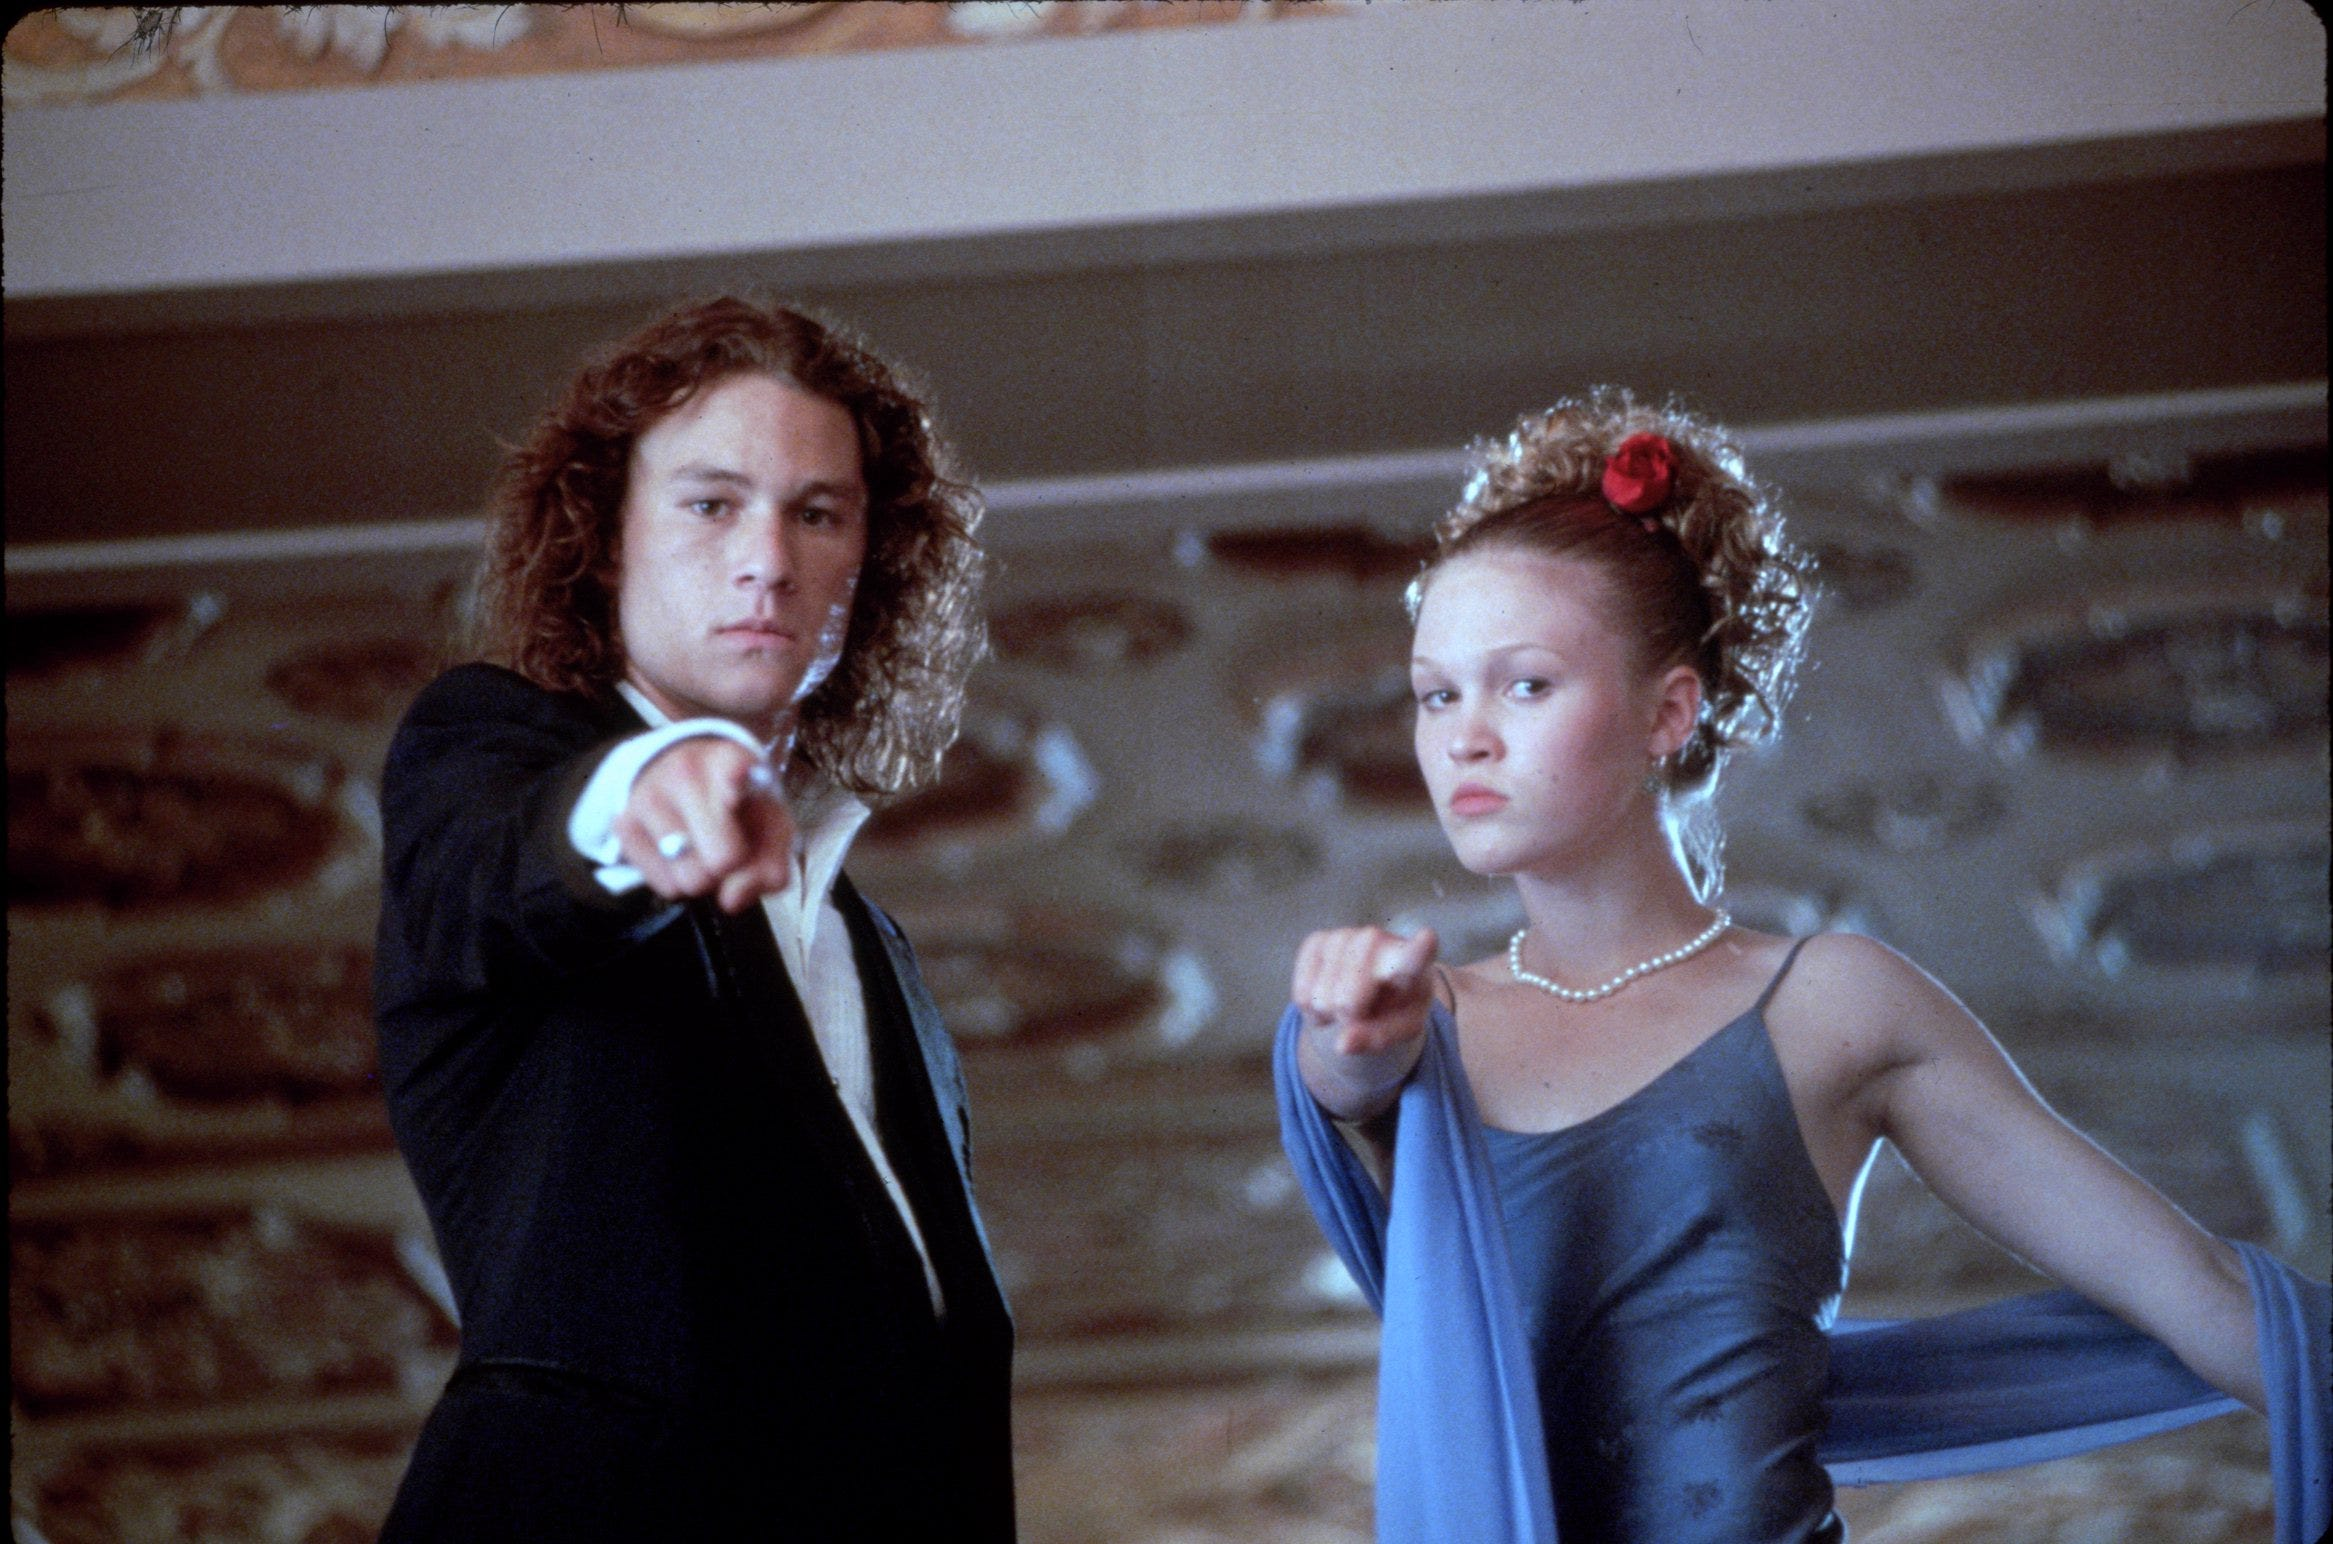 '10 Things I Hate About You': Where are the stars now?